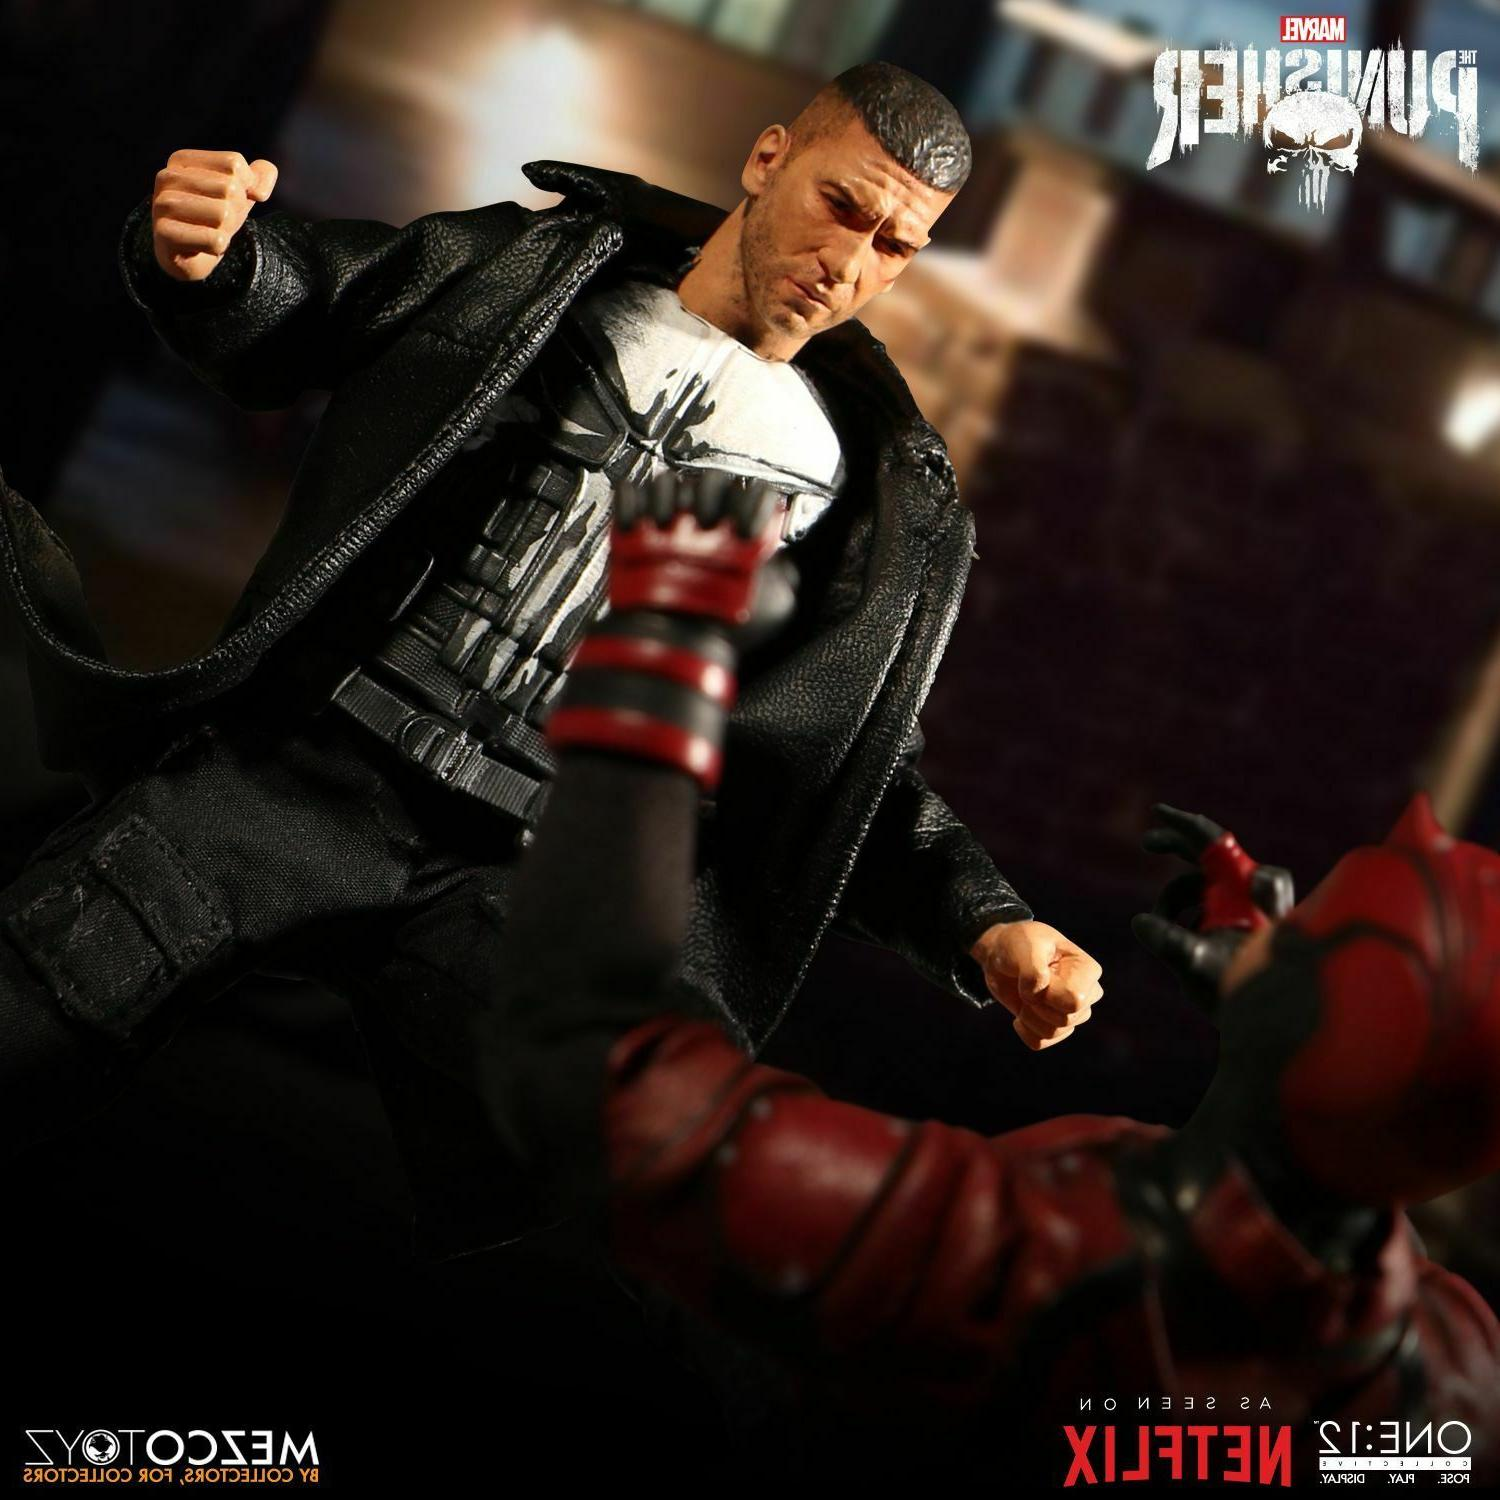 Mezco 12 COLLECTIVE Netflix Punisher inch action figure